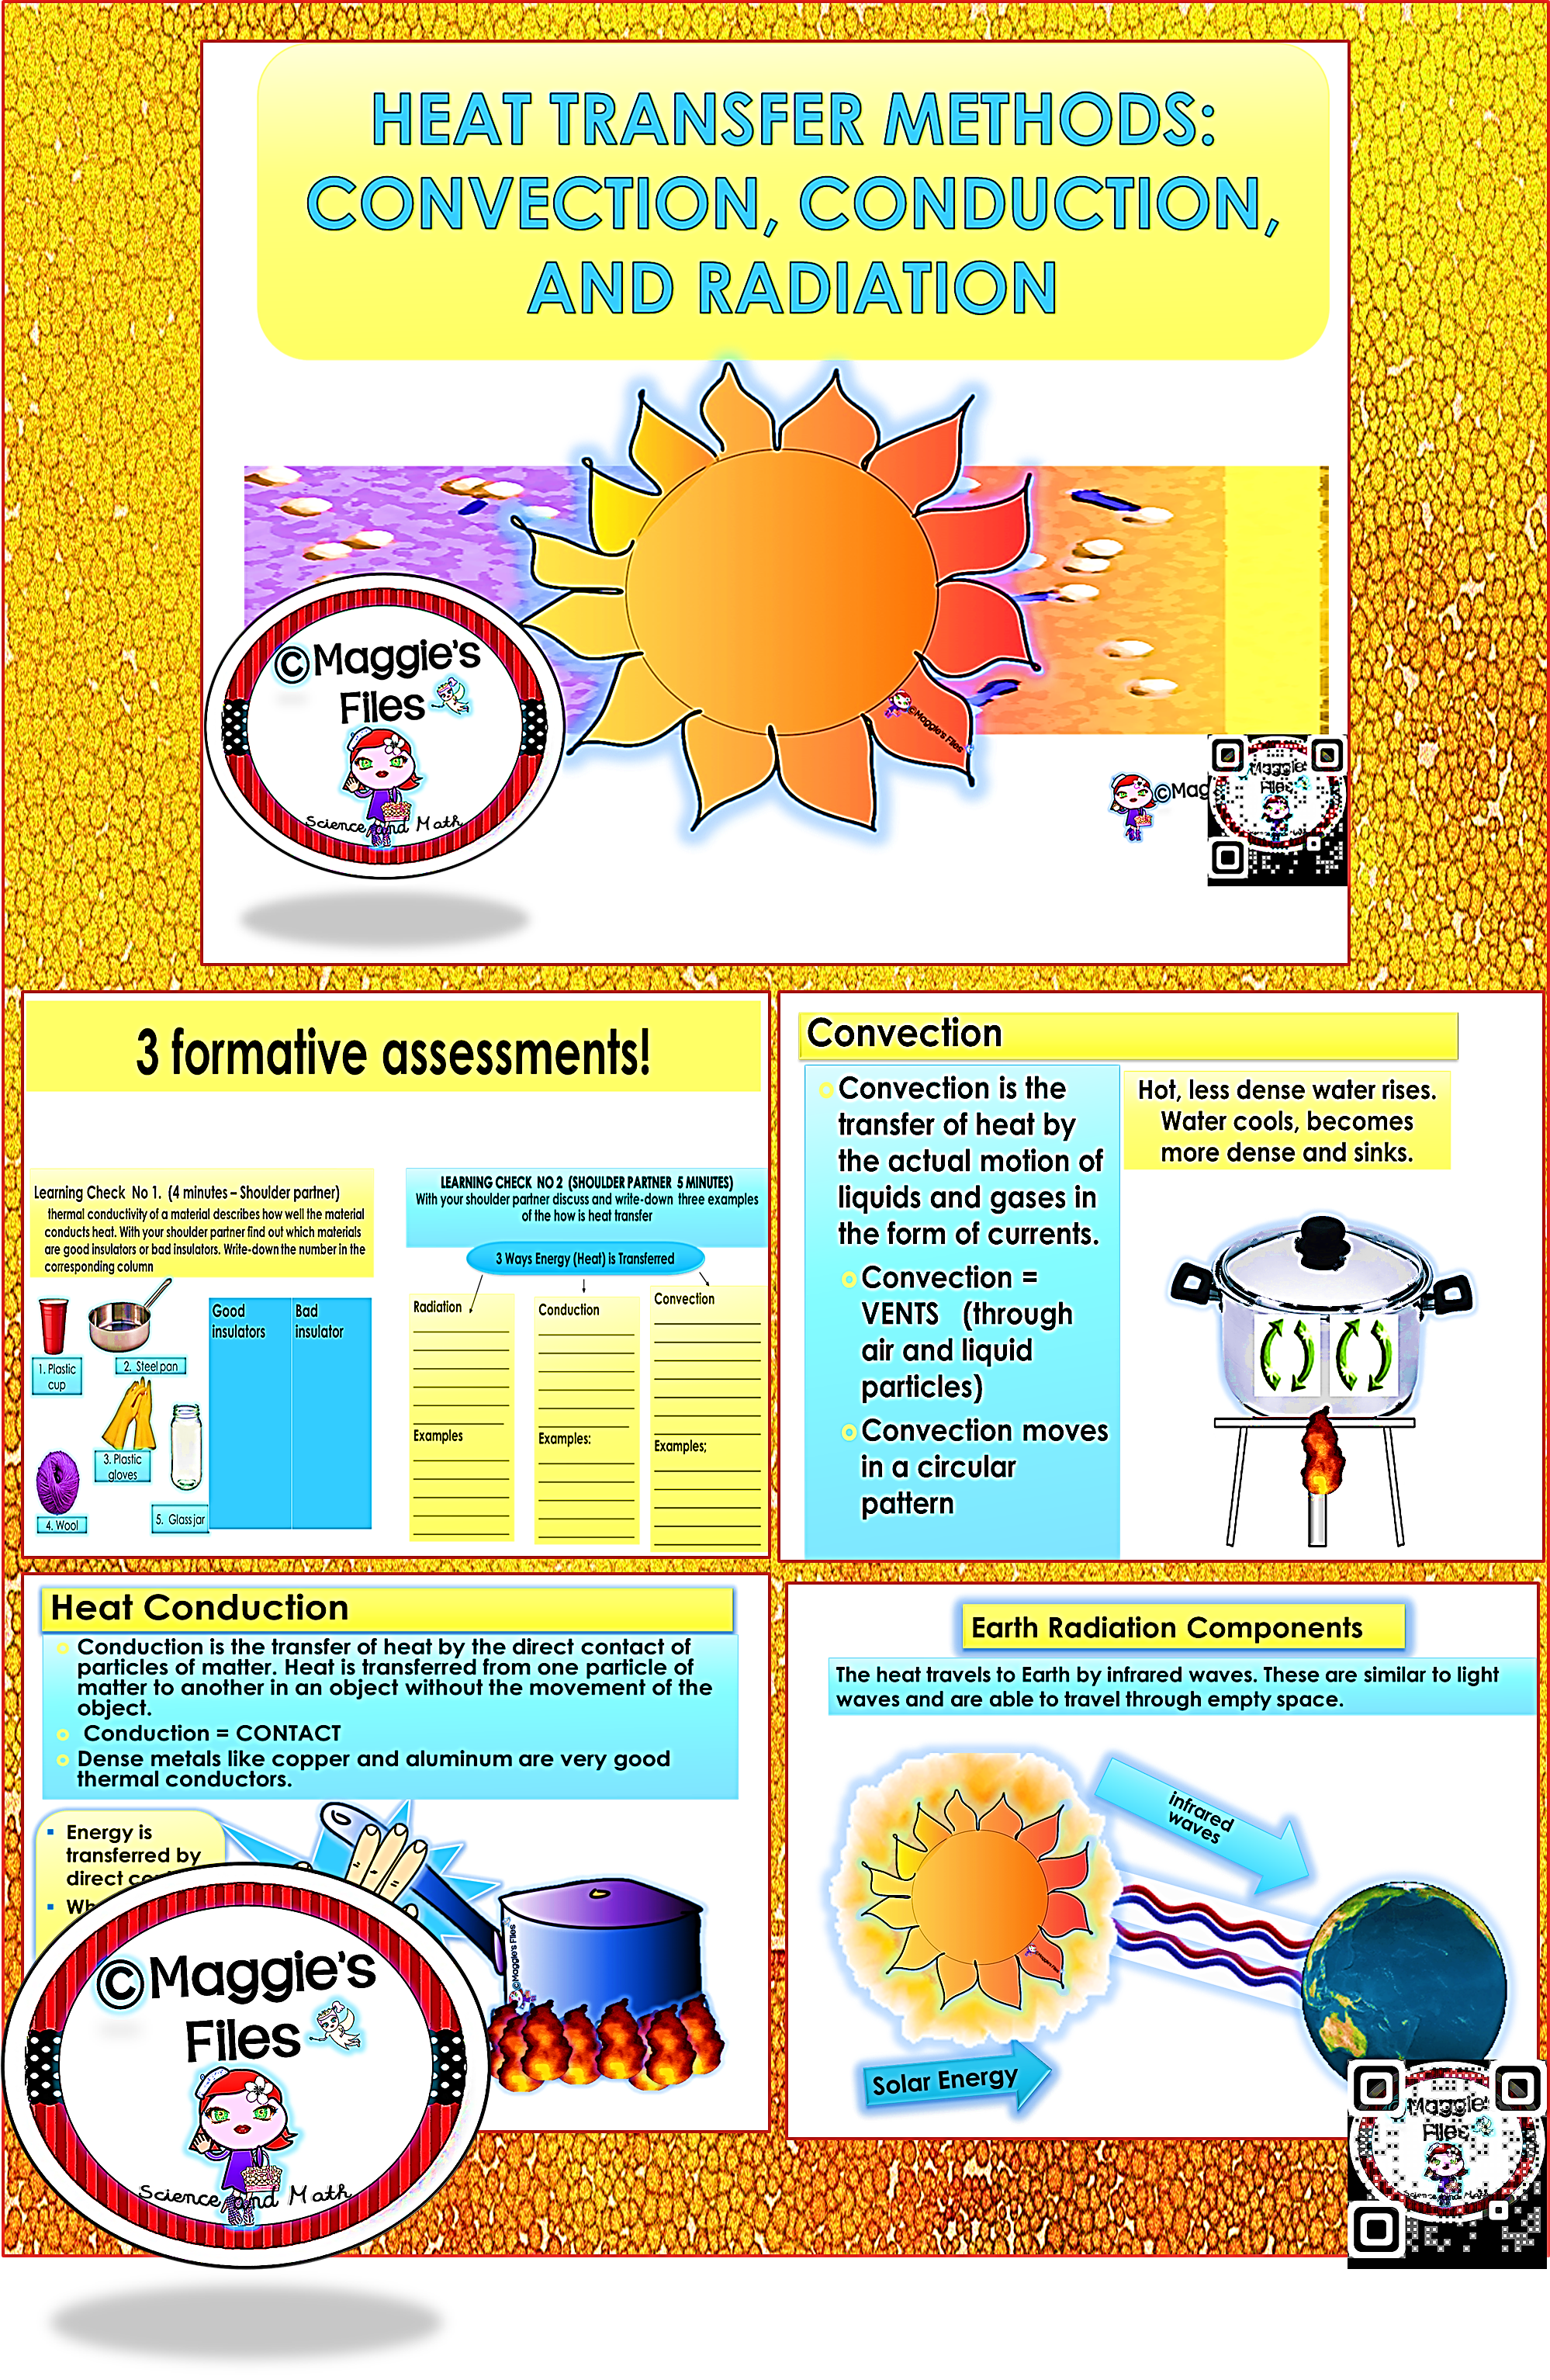 The Heat Transfer Convection Conduction And Radiation Contains 26 Slides Of A Power Point Prese Science Teaching Resources Heat Transfer Middle School Science